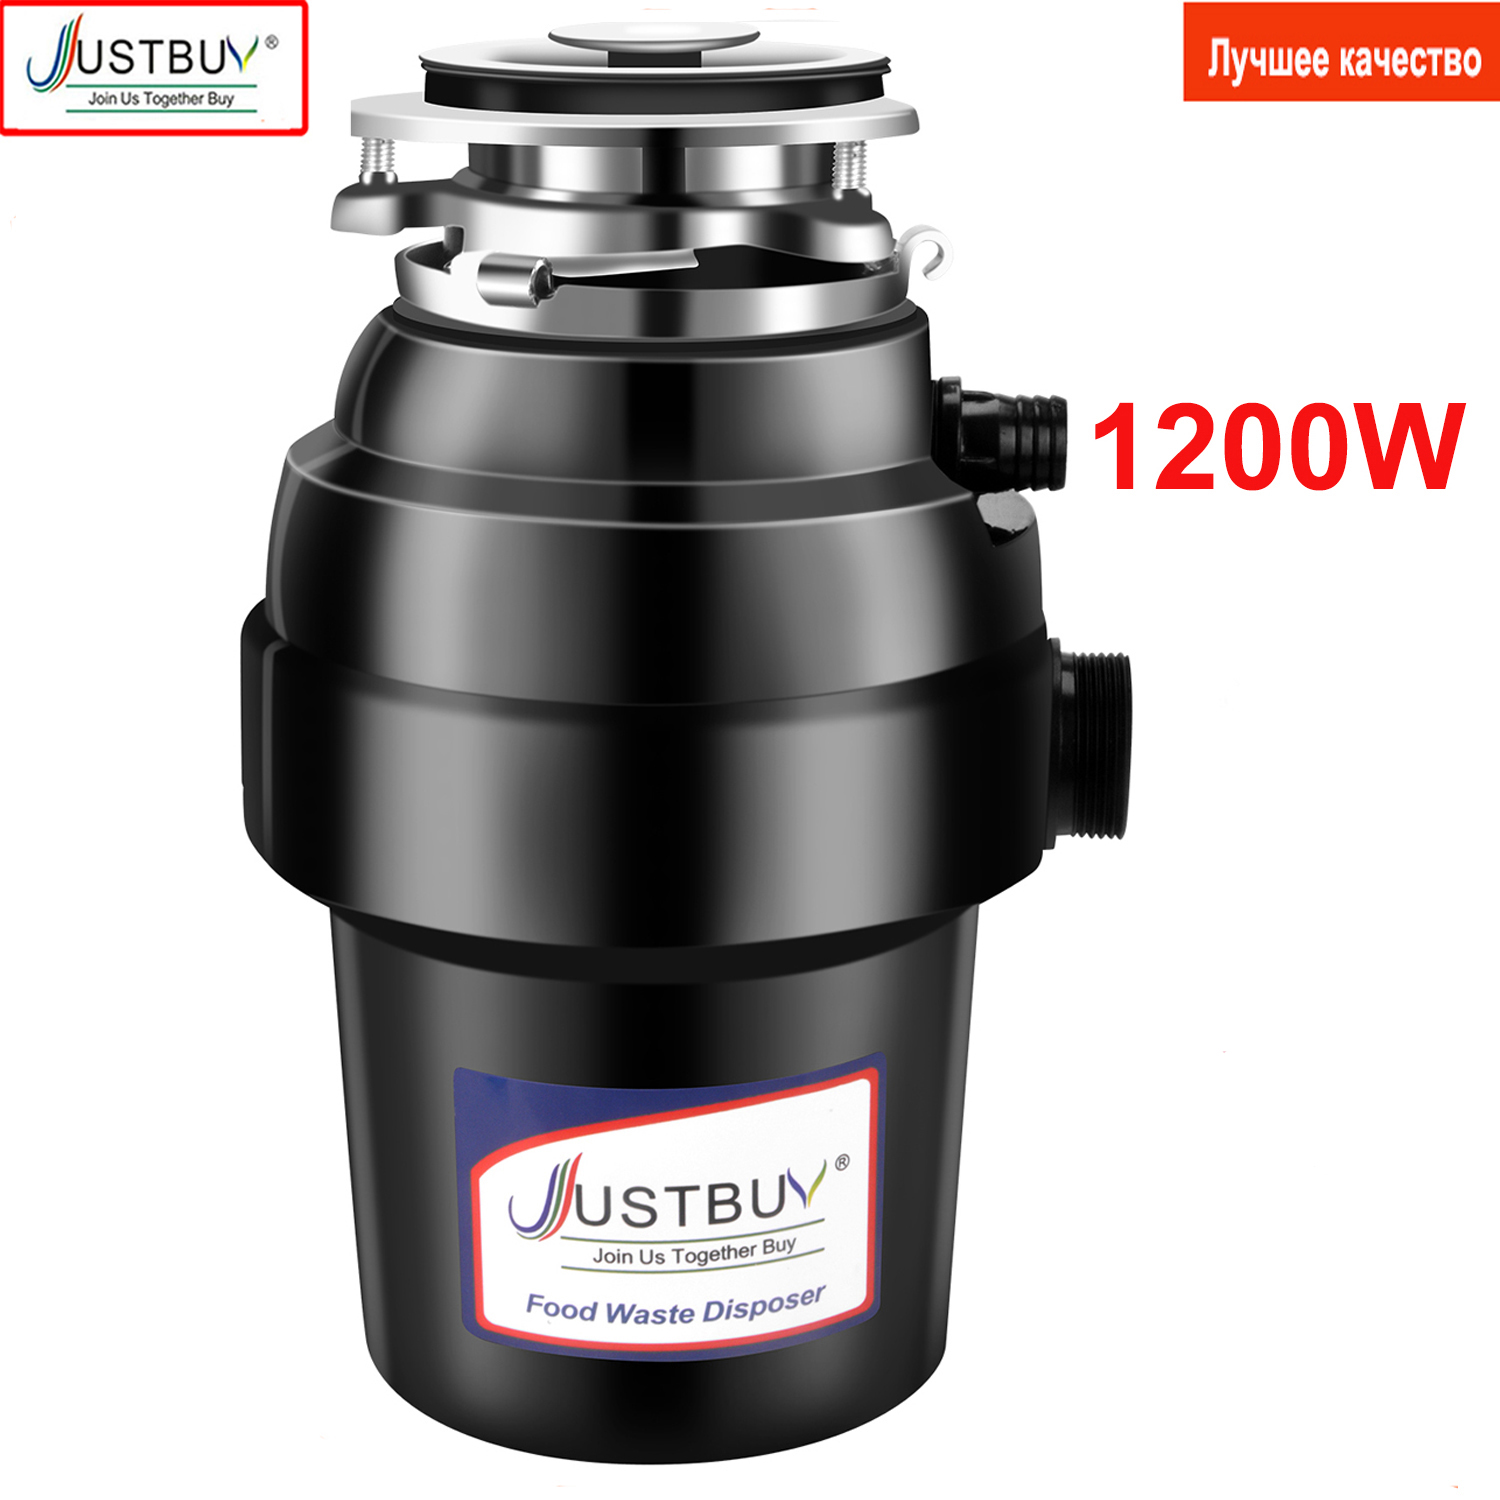 JUSTBUY Factory price Food Waste Disposers kitchen garbage disposal food crusher Stainless steel Grinder material